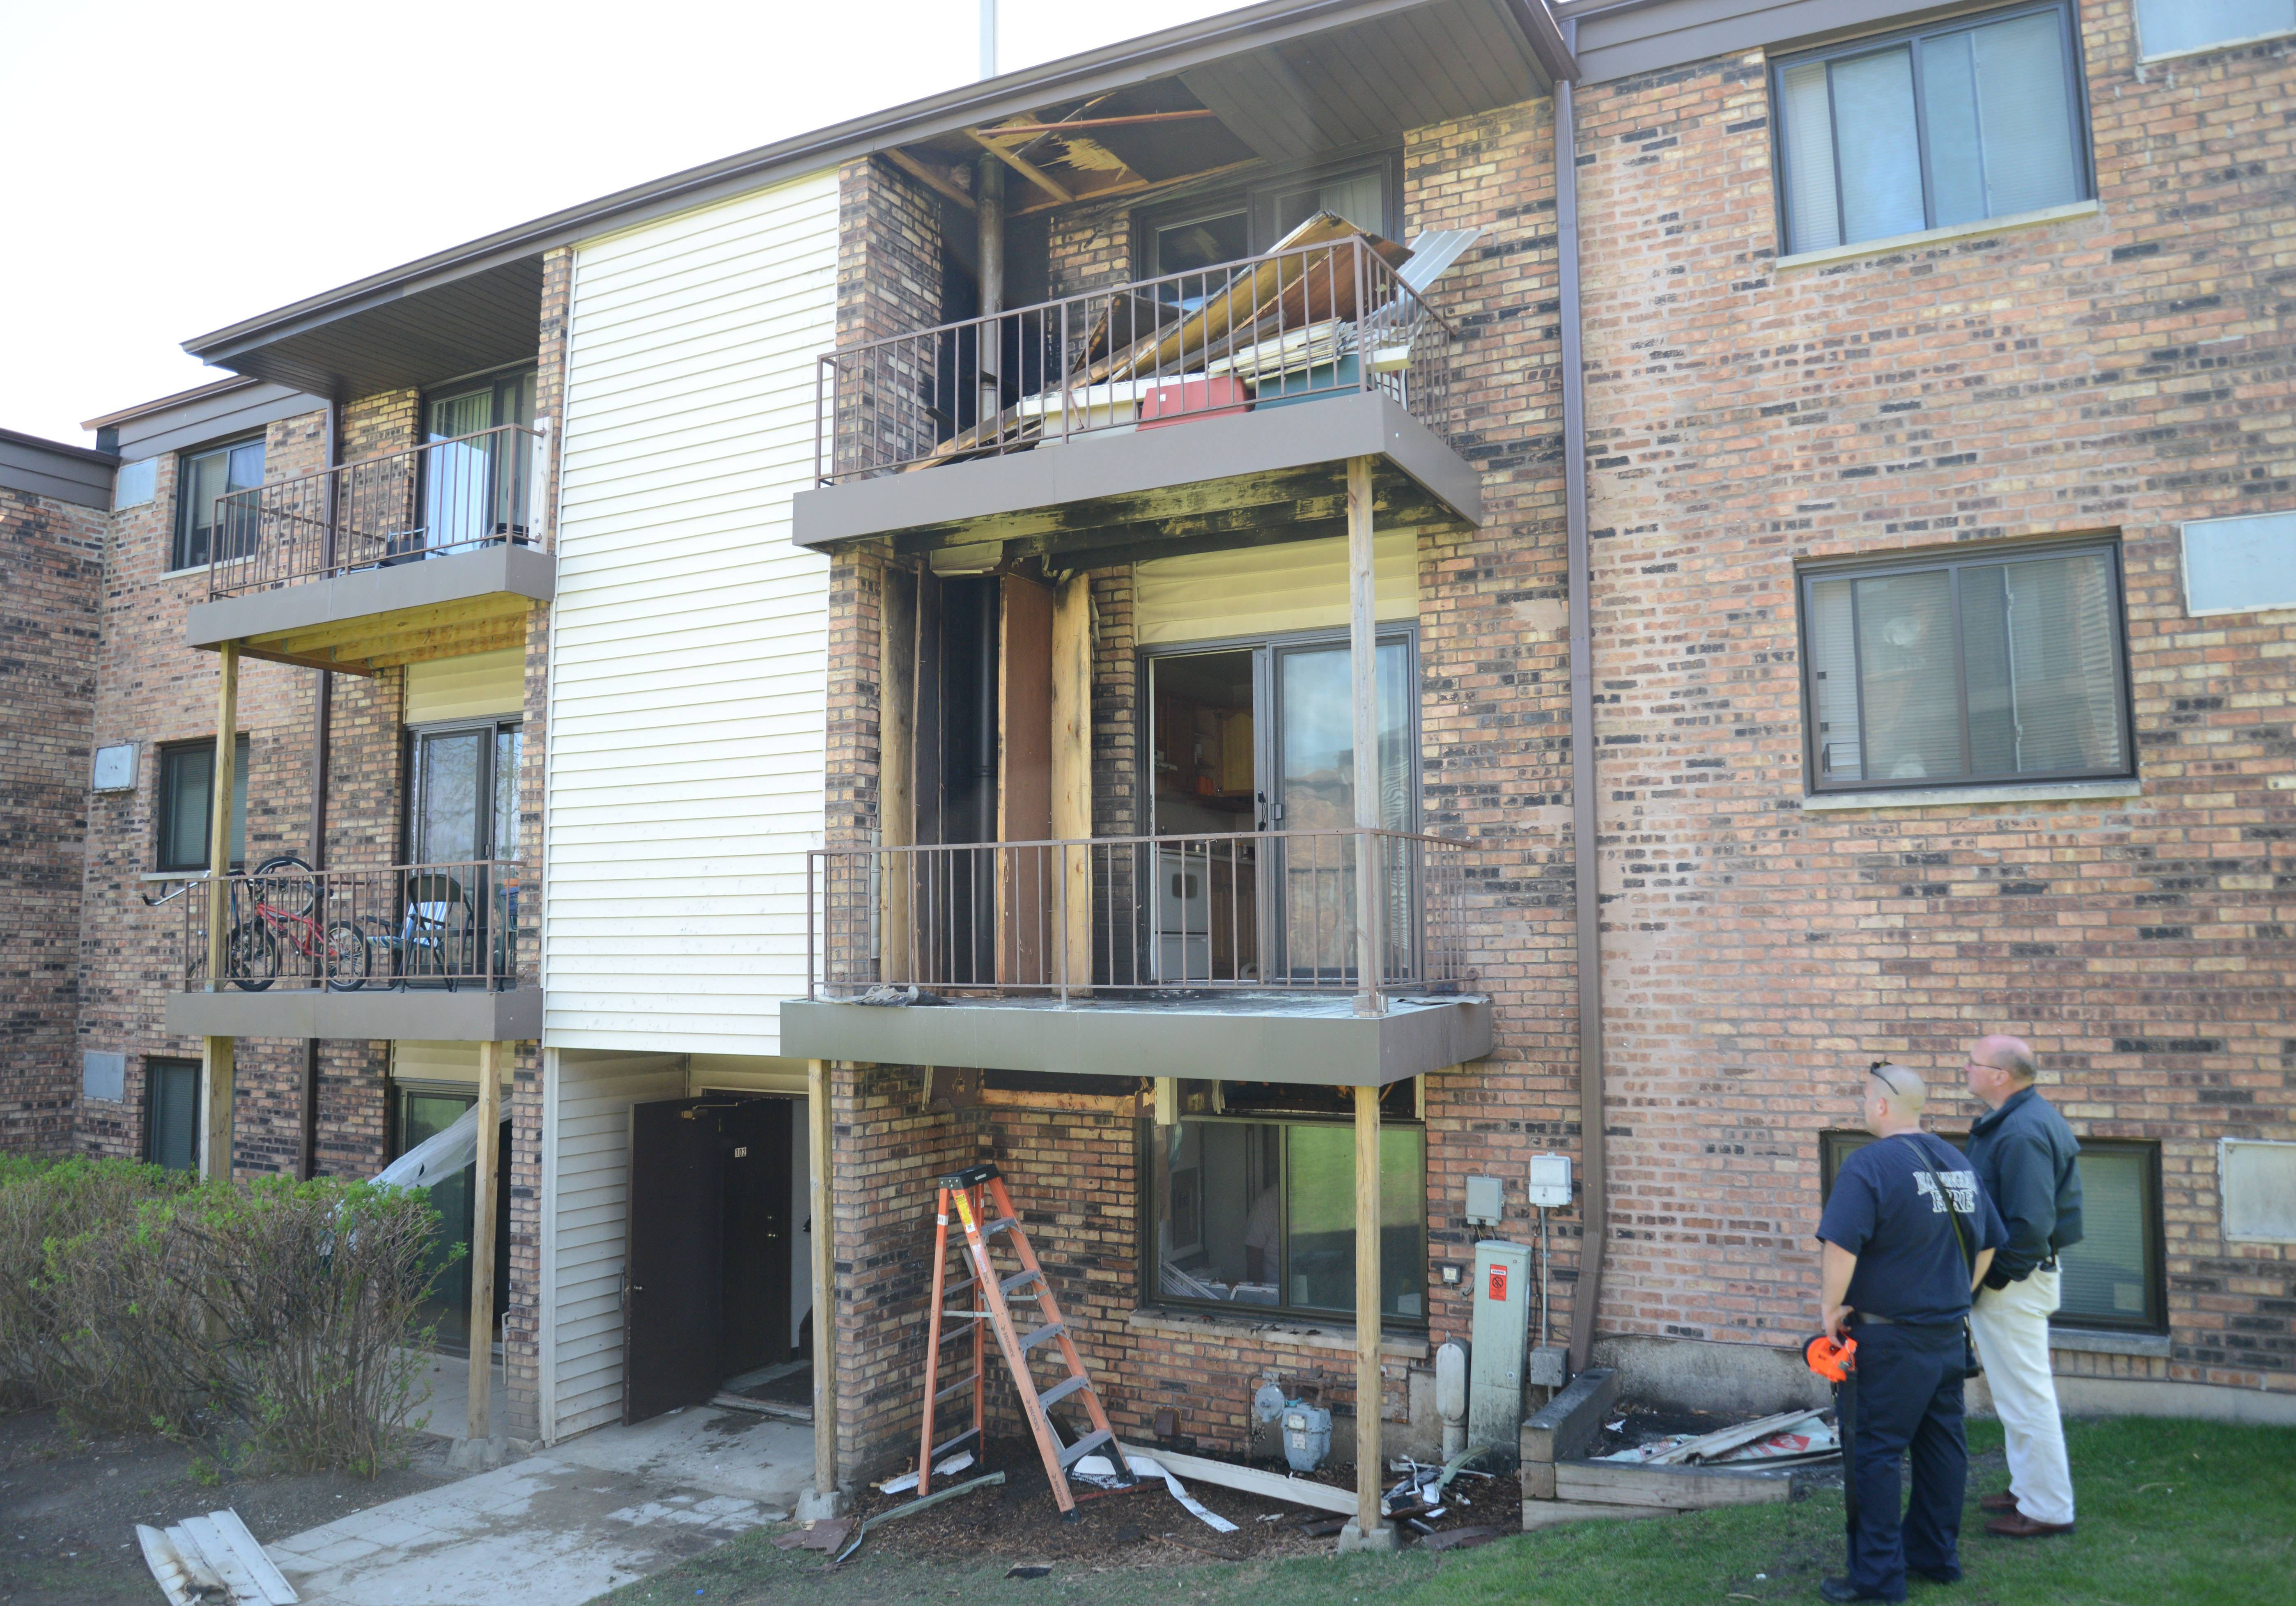 No one was injured but three families were displaced Friday when fire struck a Bloomingdale apartment building.